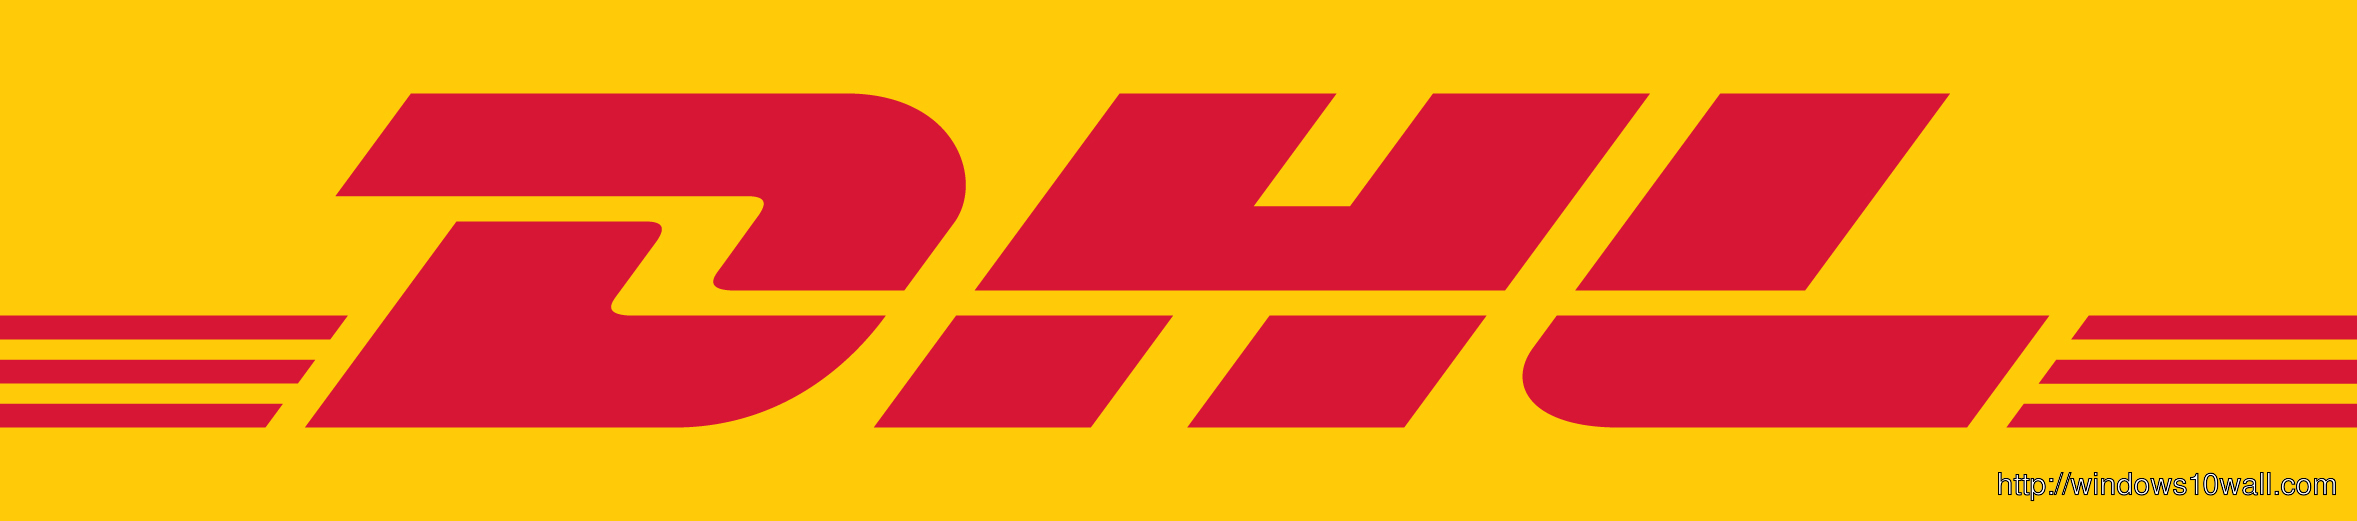 Dhl Logo Background Wallpaper   Dhl Logo 510238   HD Wallpaper 2357x521